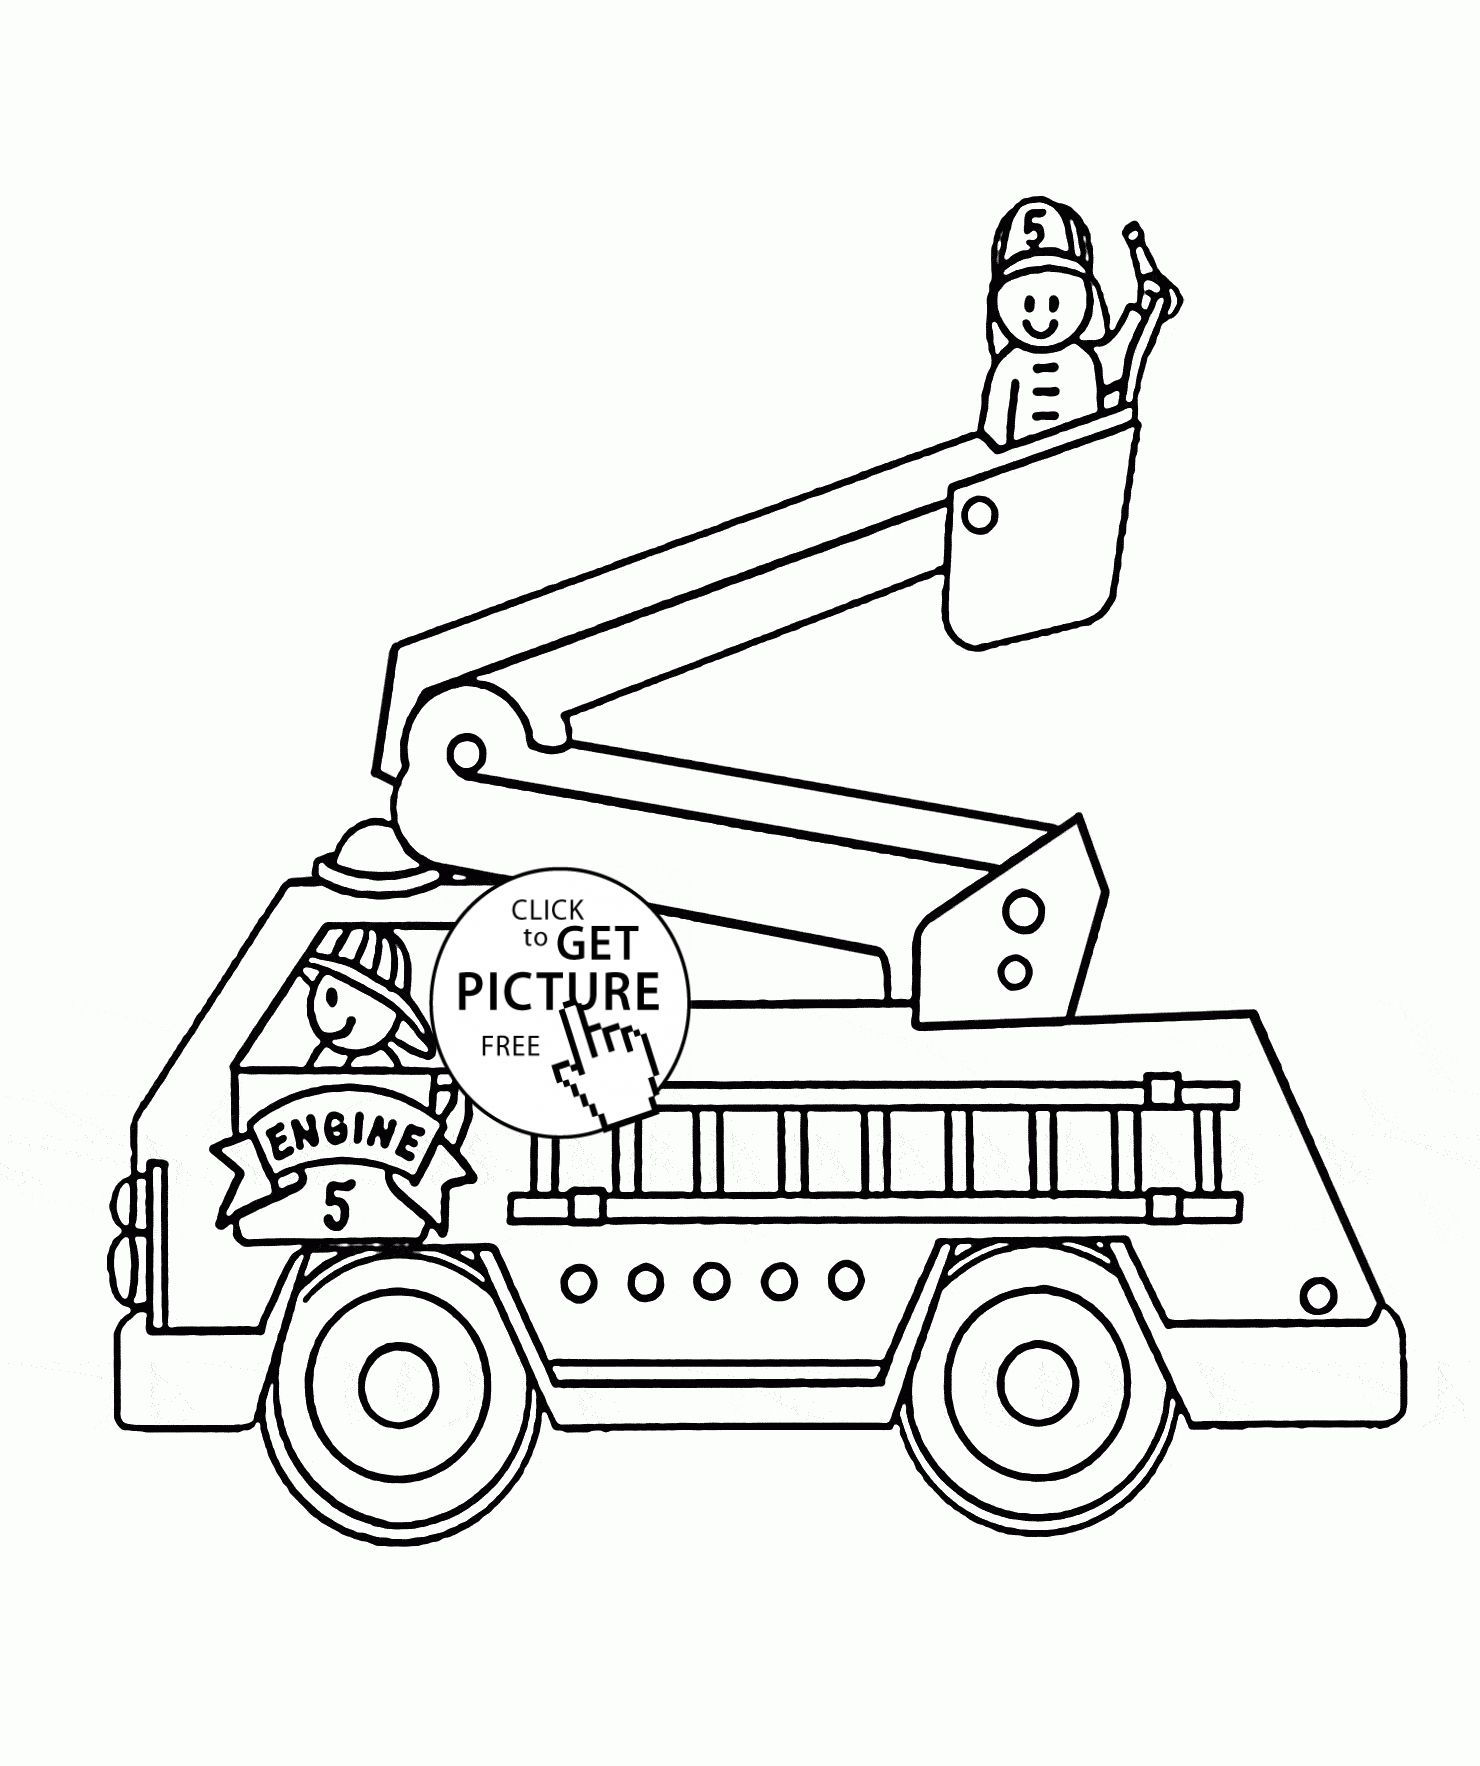 Coloring Pages Of Cars And Trucks Genial Fire Truck